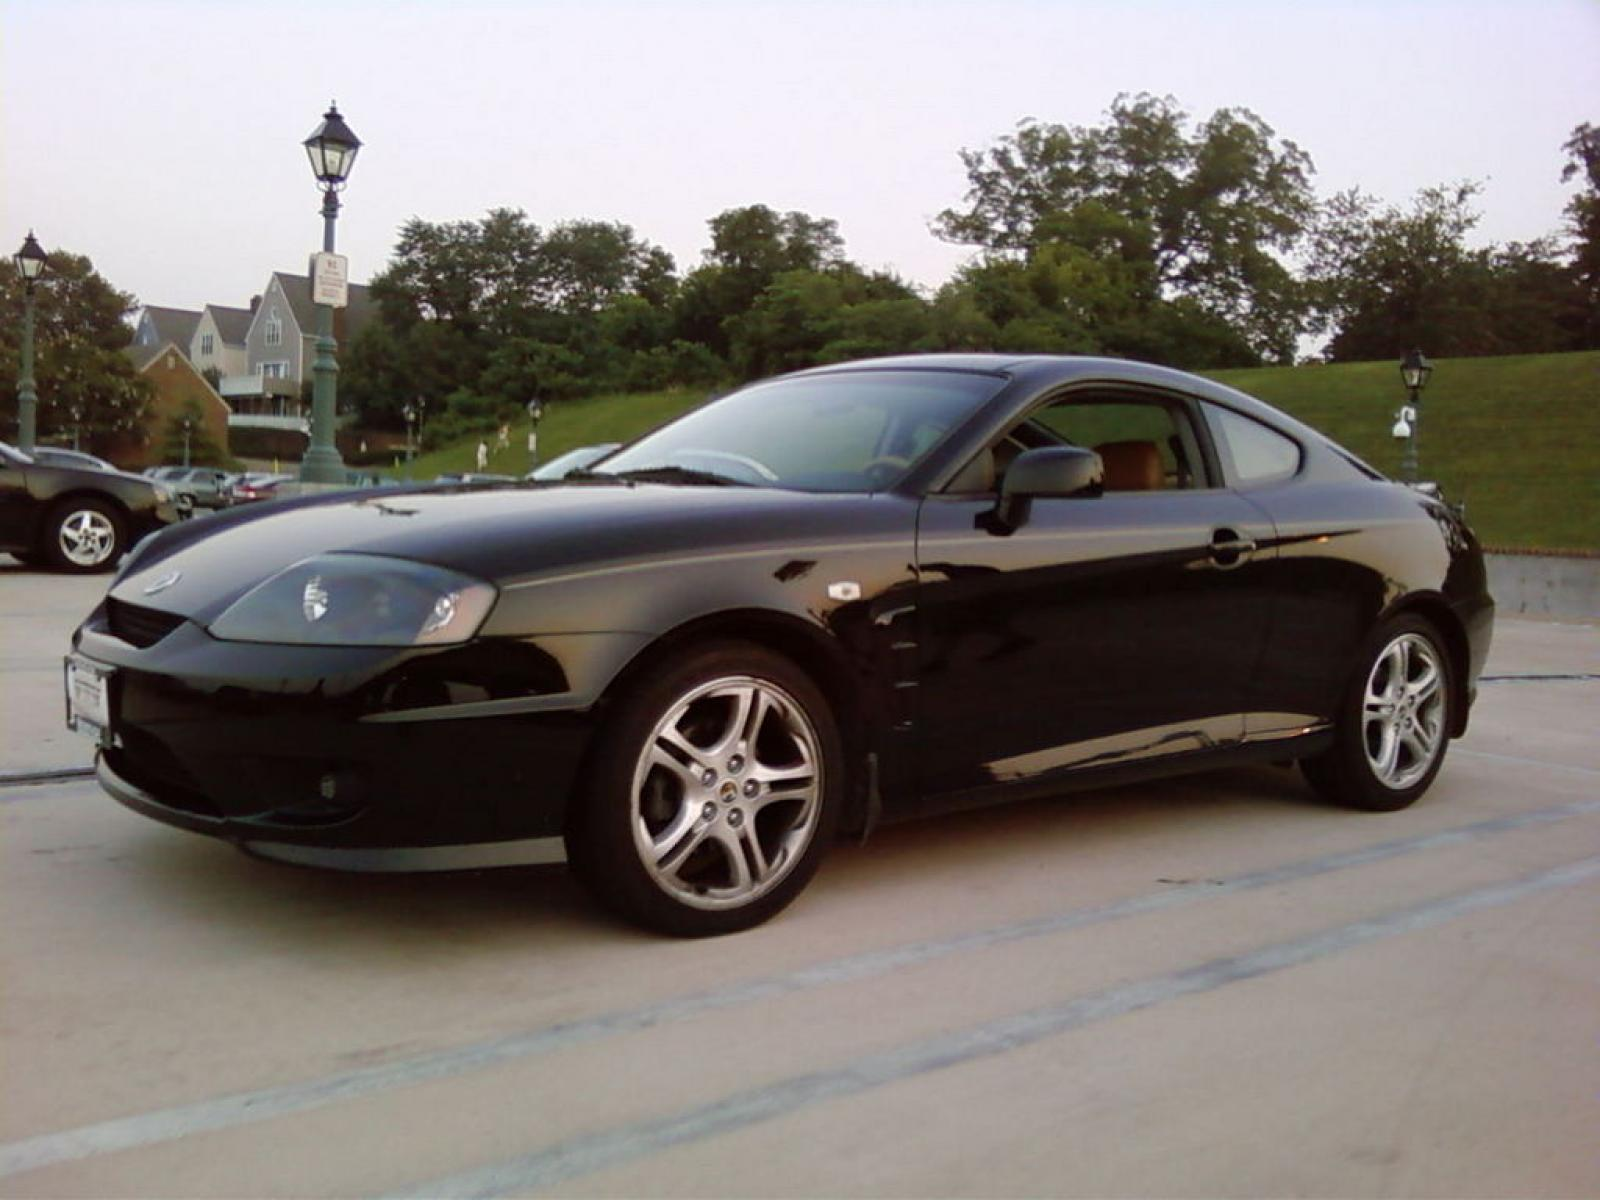 2006 Hyundai Tiburon Information And Photos Zombiedrive